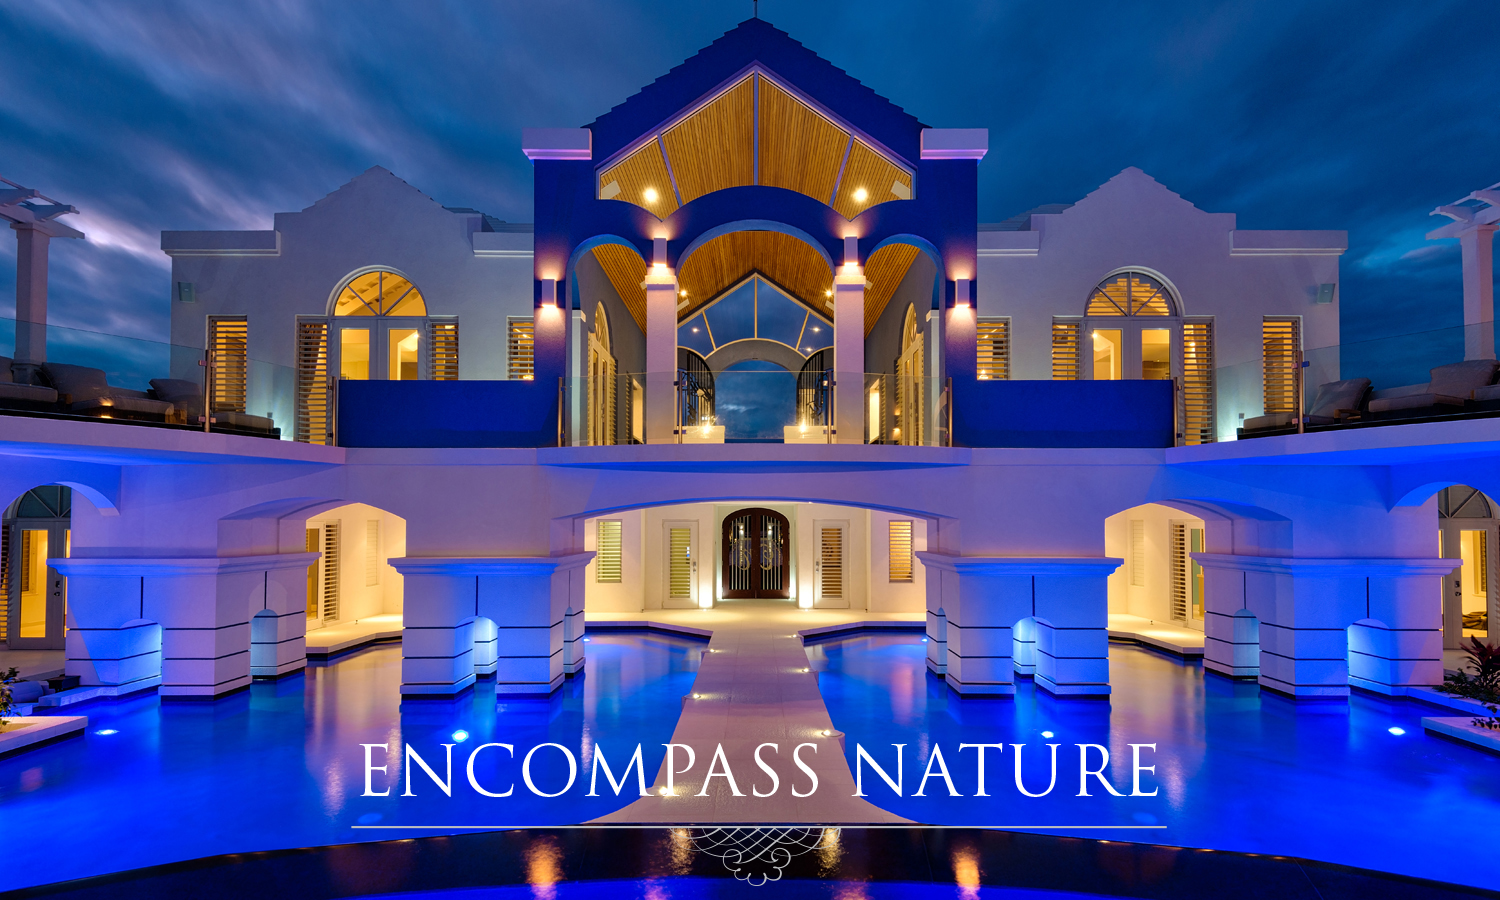 encompass nature